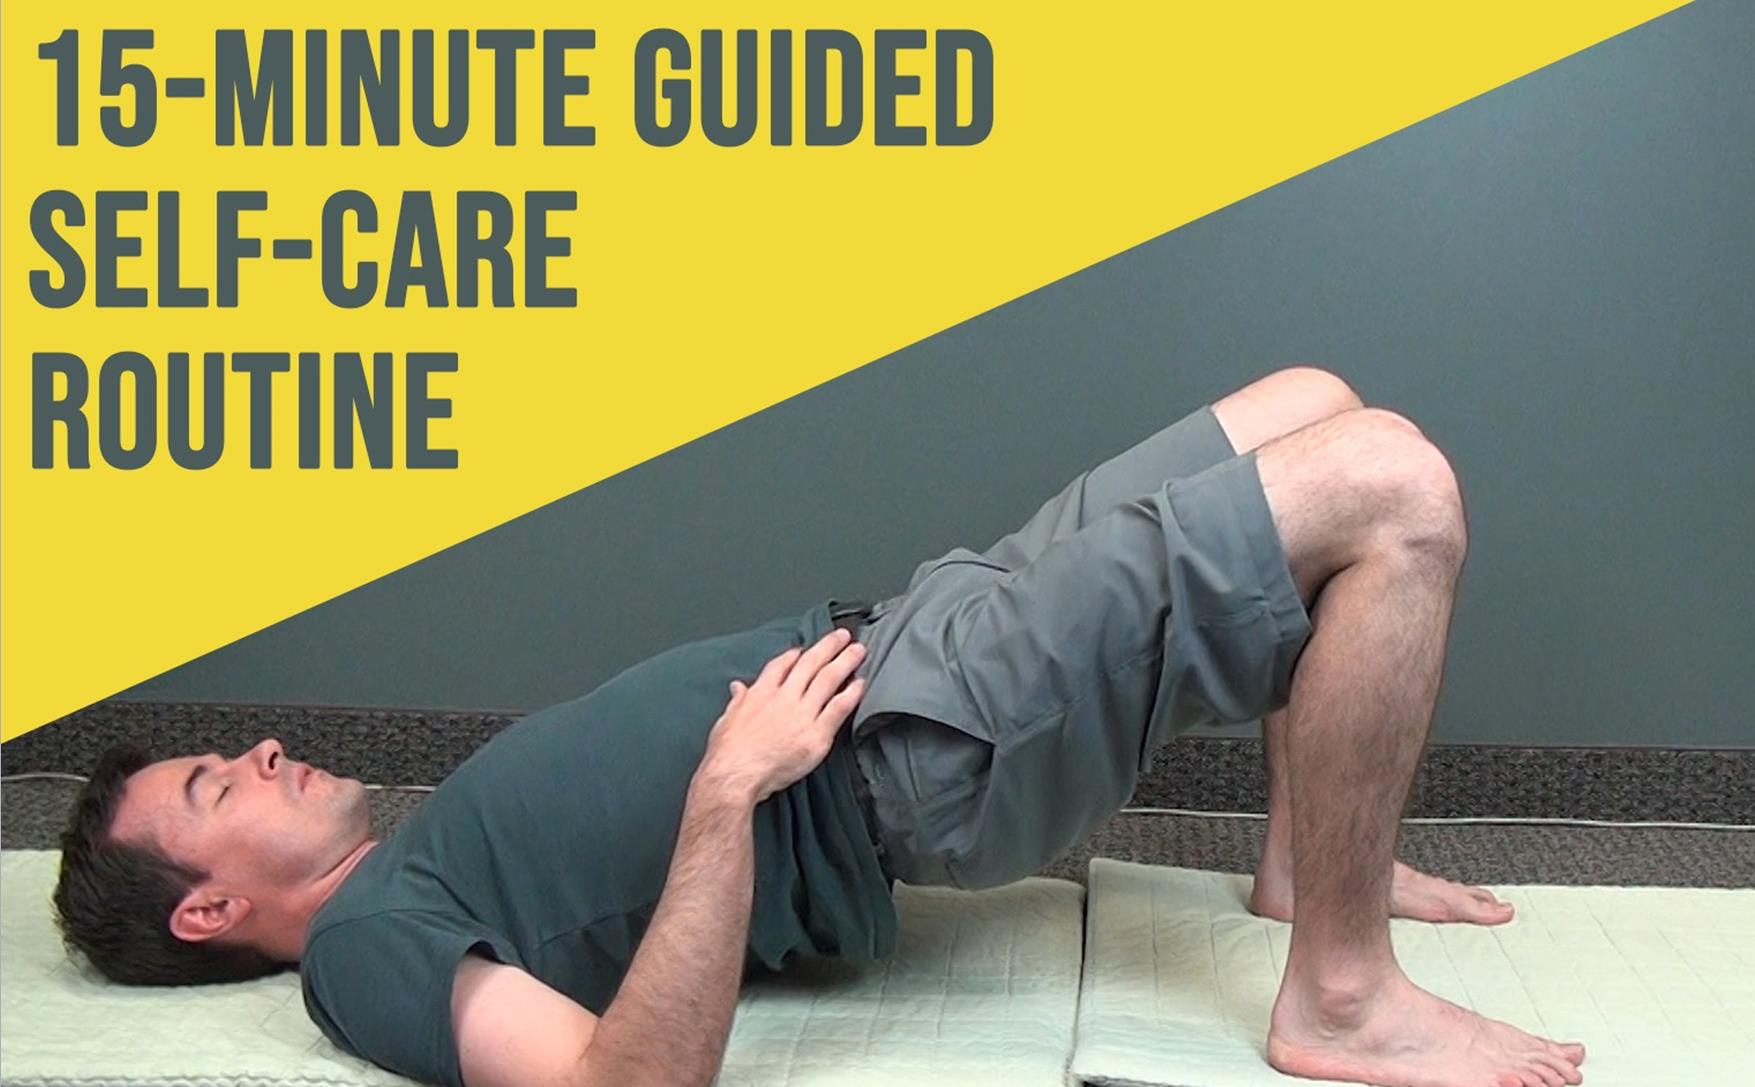 Relax your Back and Legs and Energize the Core with this Guided Exercise Routine